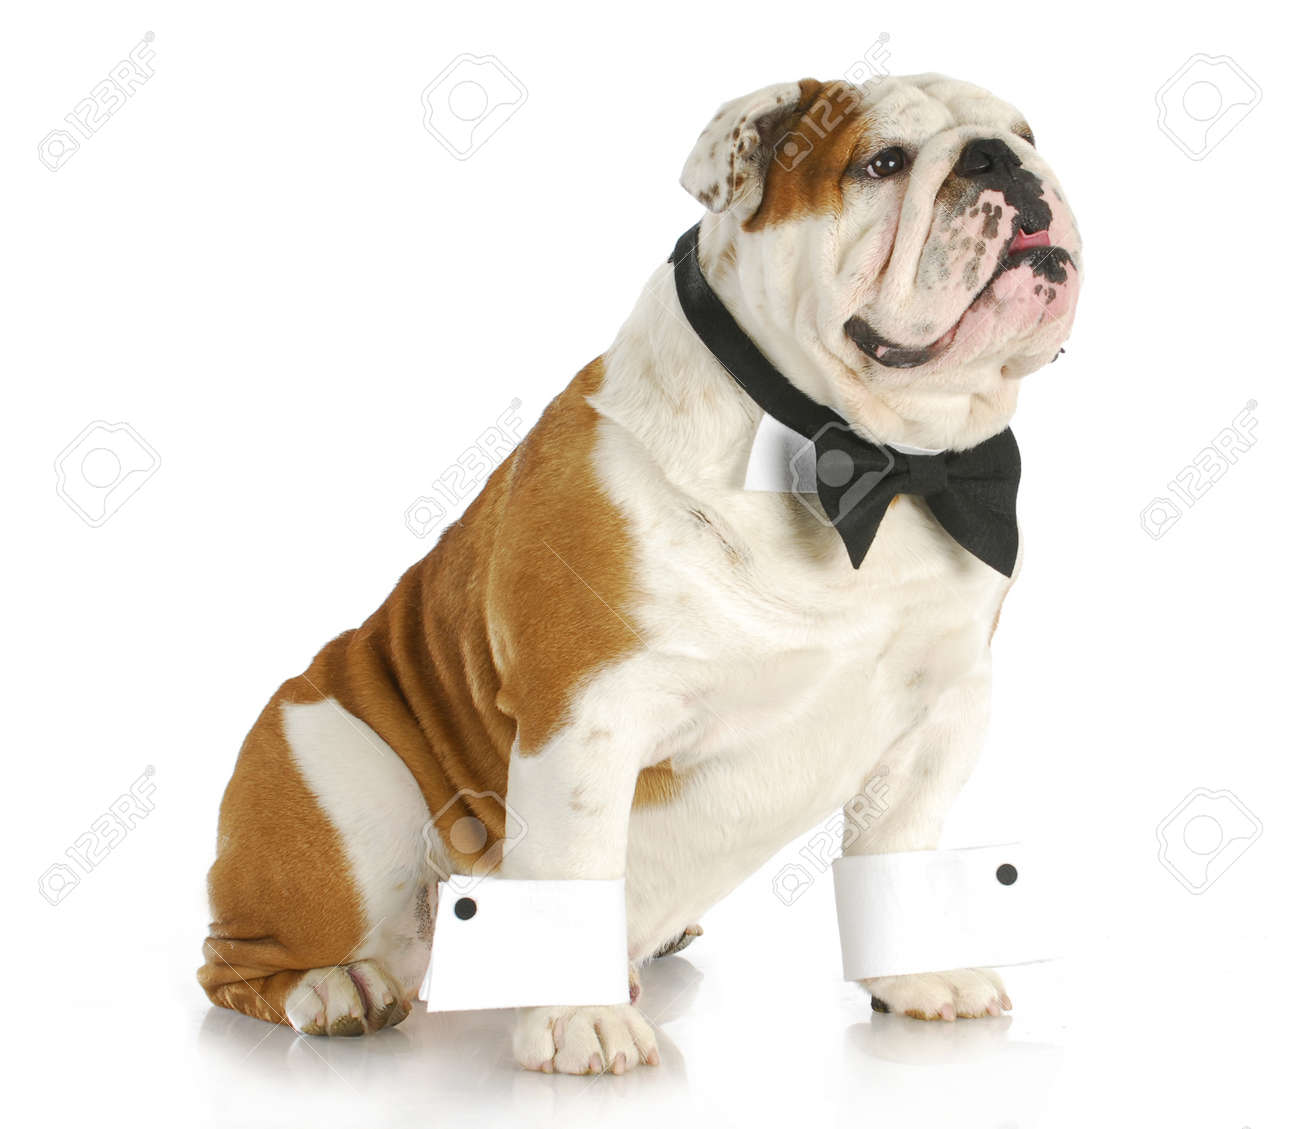 dcab40a3db6 male dog - english bulldog dressed up wearing bowtie and cuffs on white  background Stock Photo